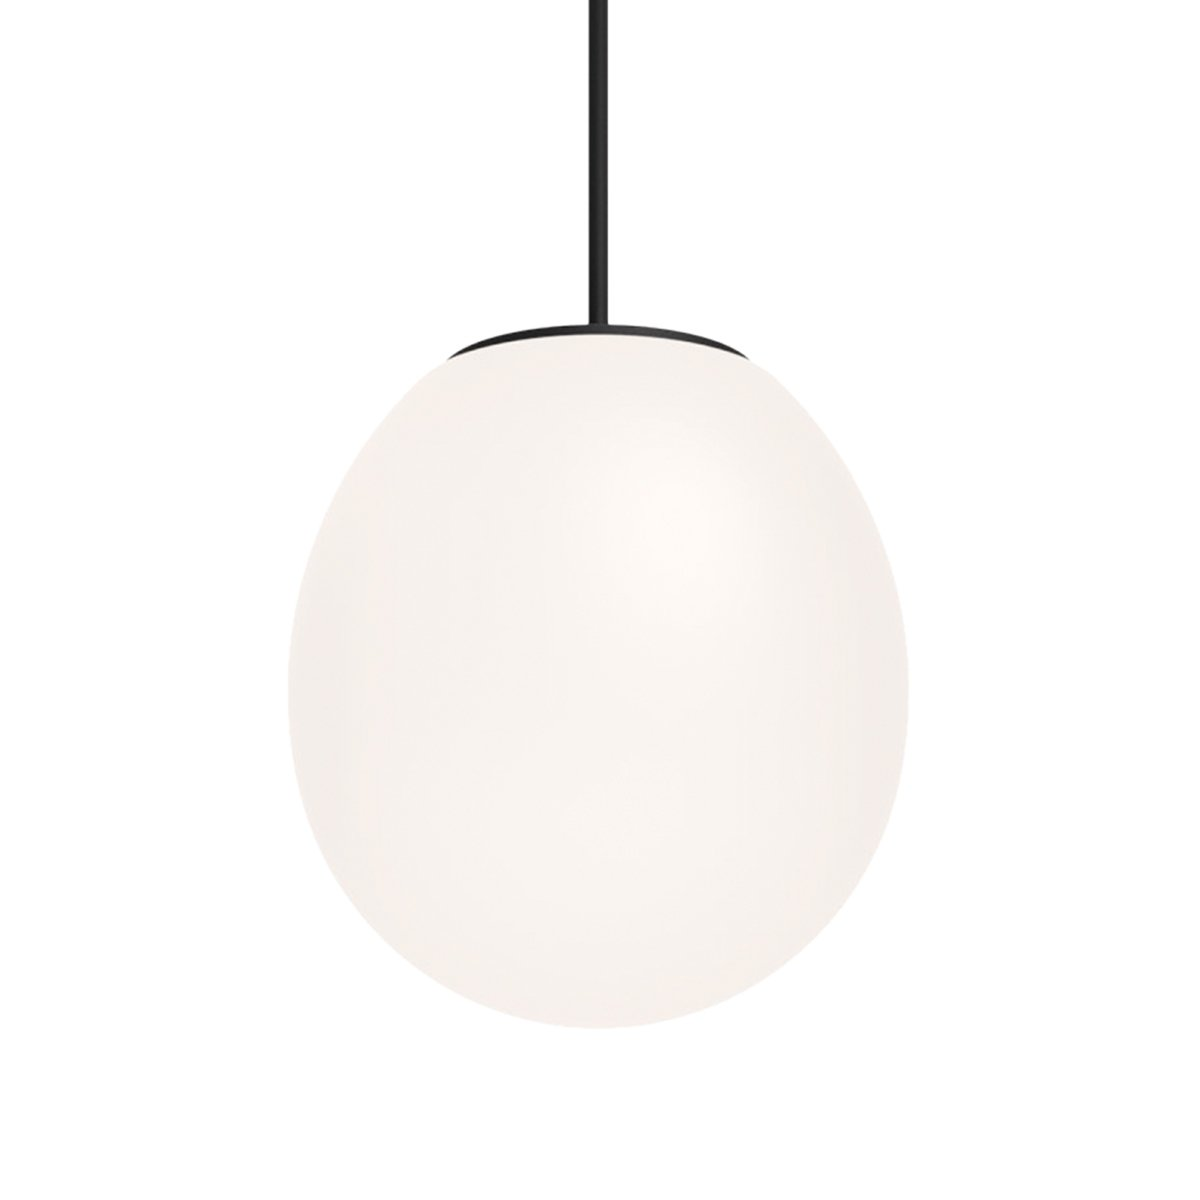 Wever & Ducr� Dro Hanglamp 2.0 - Wit